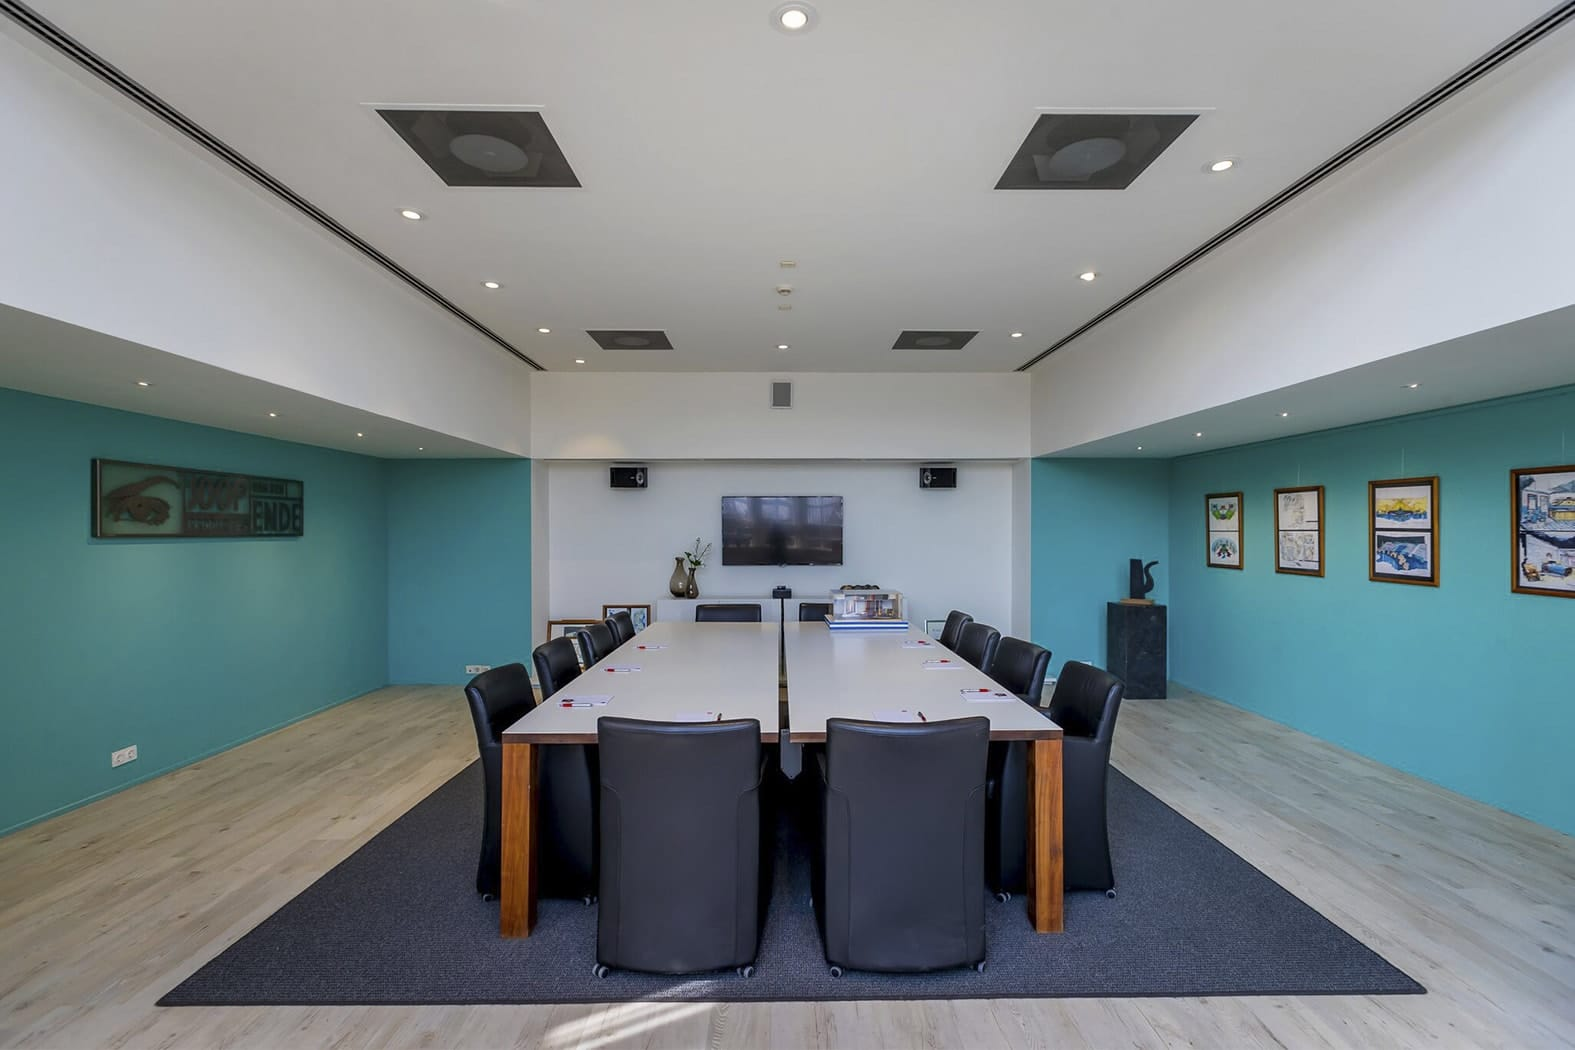 Inspirerende vergaderzaal huren in Aalsmeer | Crown Business Center Aalsmeer